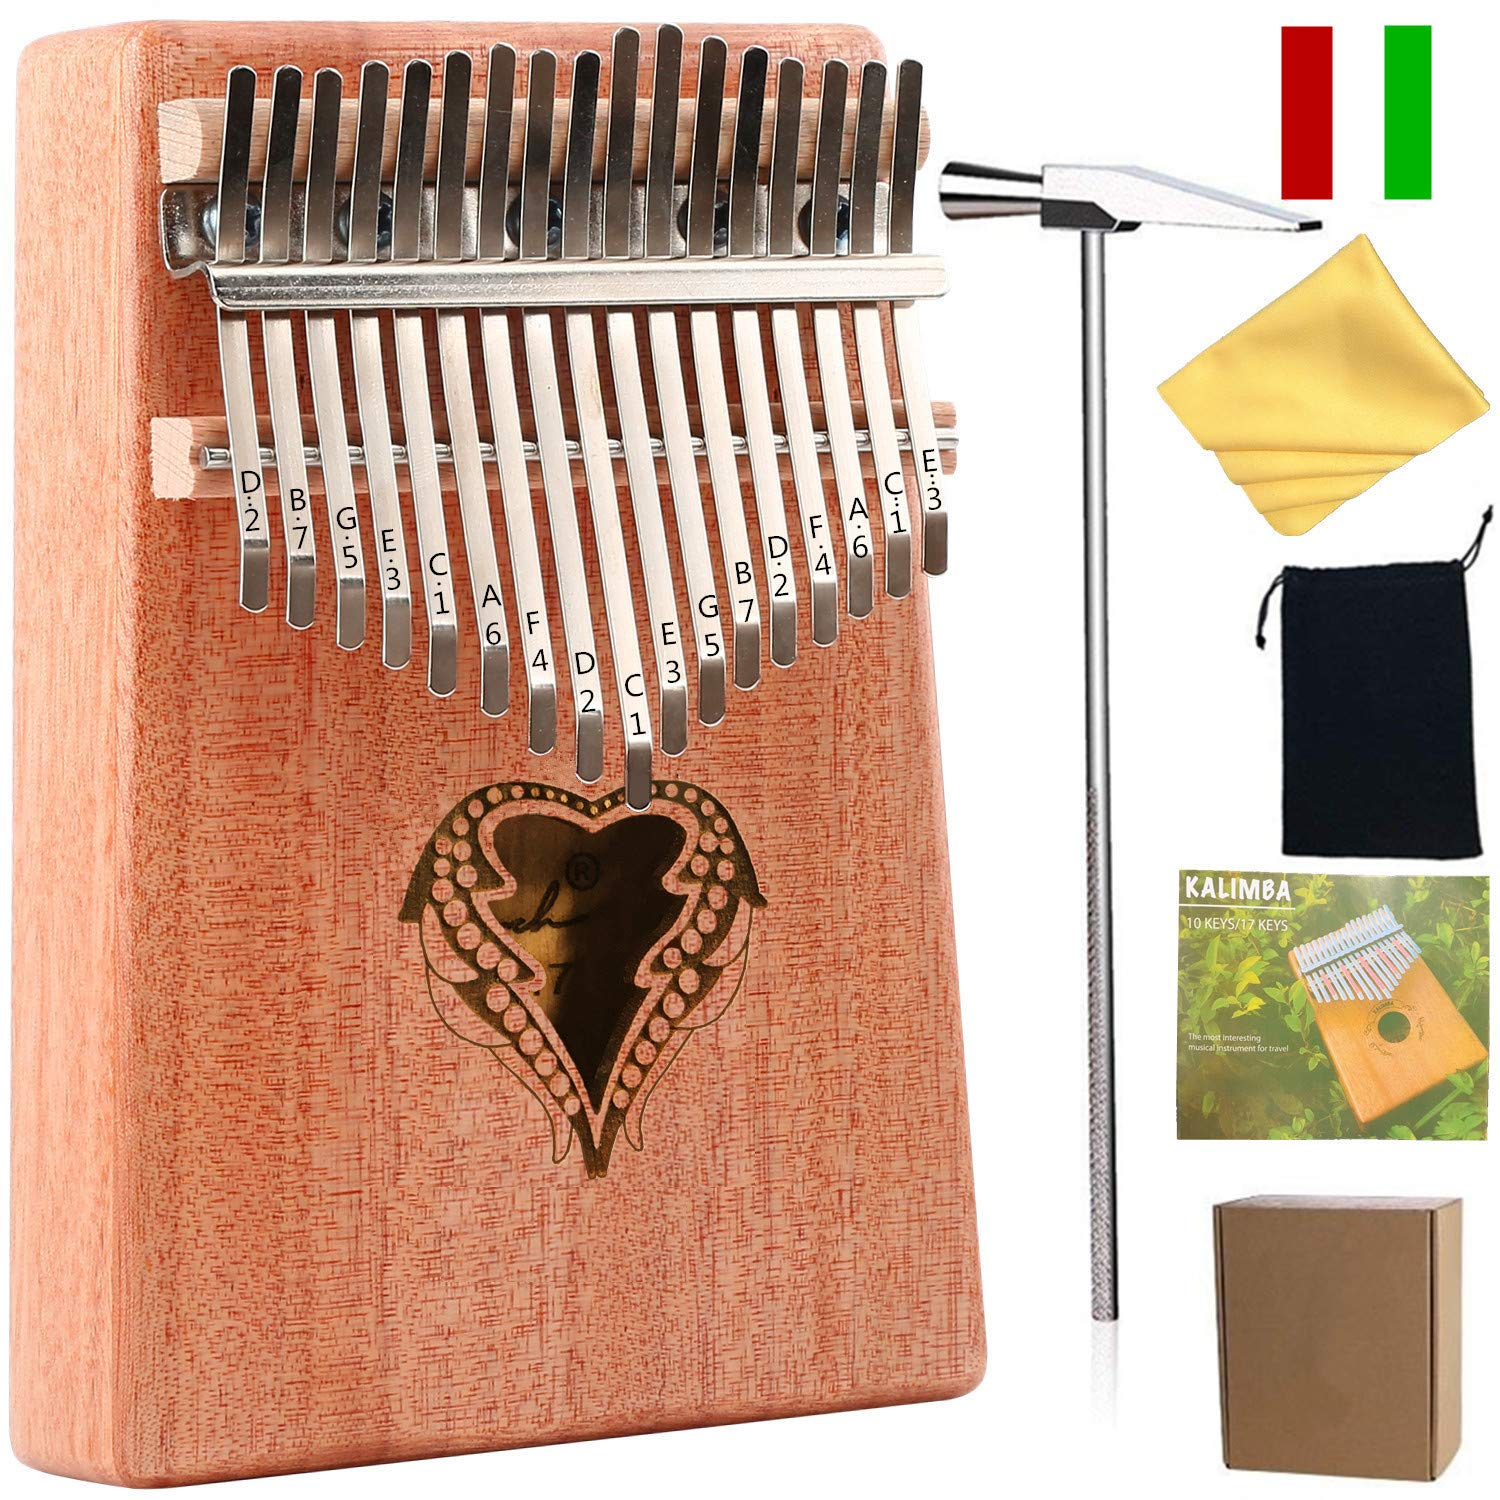 Thumb Piano Ranch Kalimba 17 keys Finger Mbira with Online 6 Free Lessons Solid Wood Mahogany Christmas Gifts with Bag/Carved Notation/Tune Hammer - Love Heart